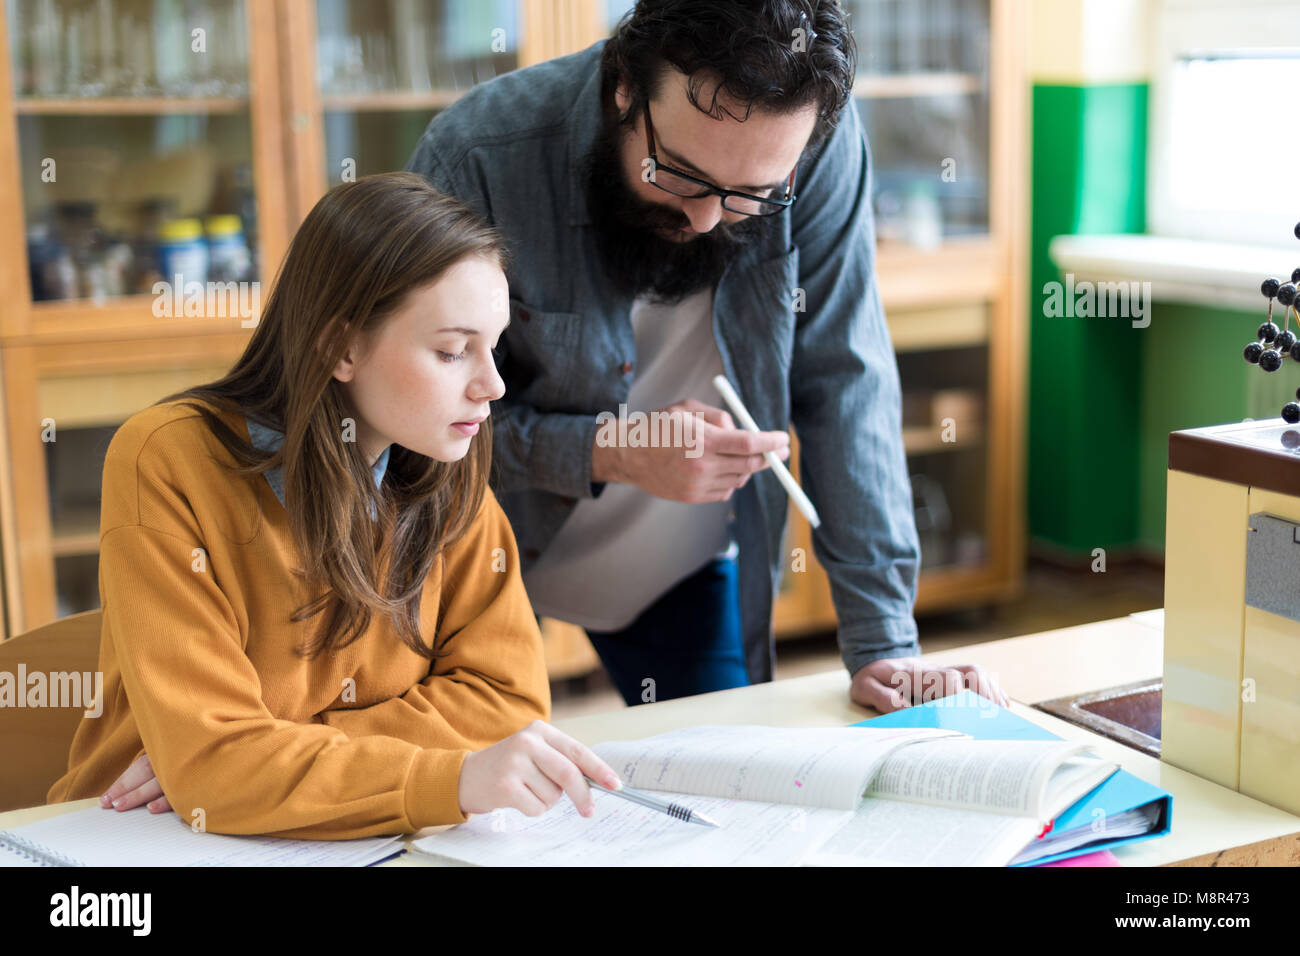 Young teacher helping his student in chemistry class. Education, Tutoring and Encouragement concept. - Stock Image